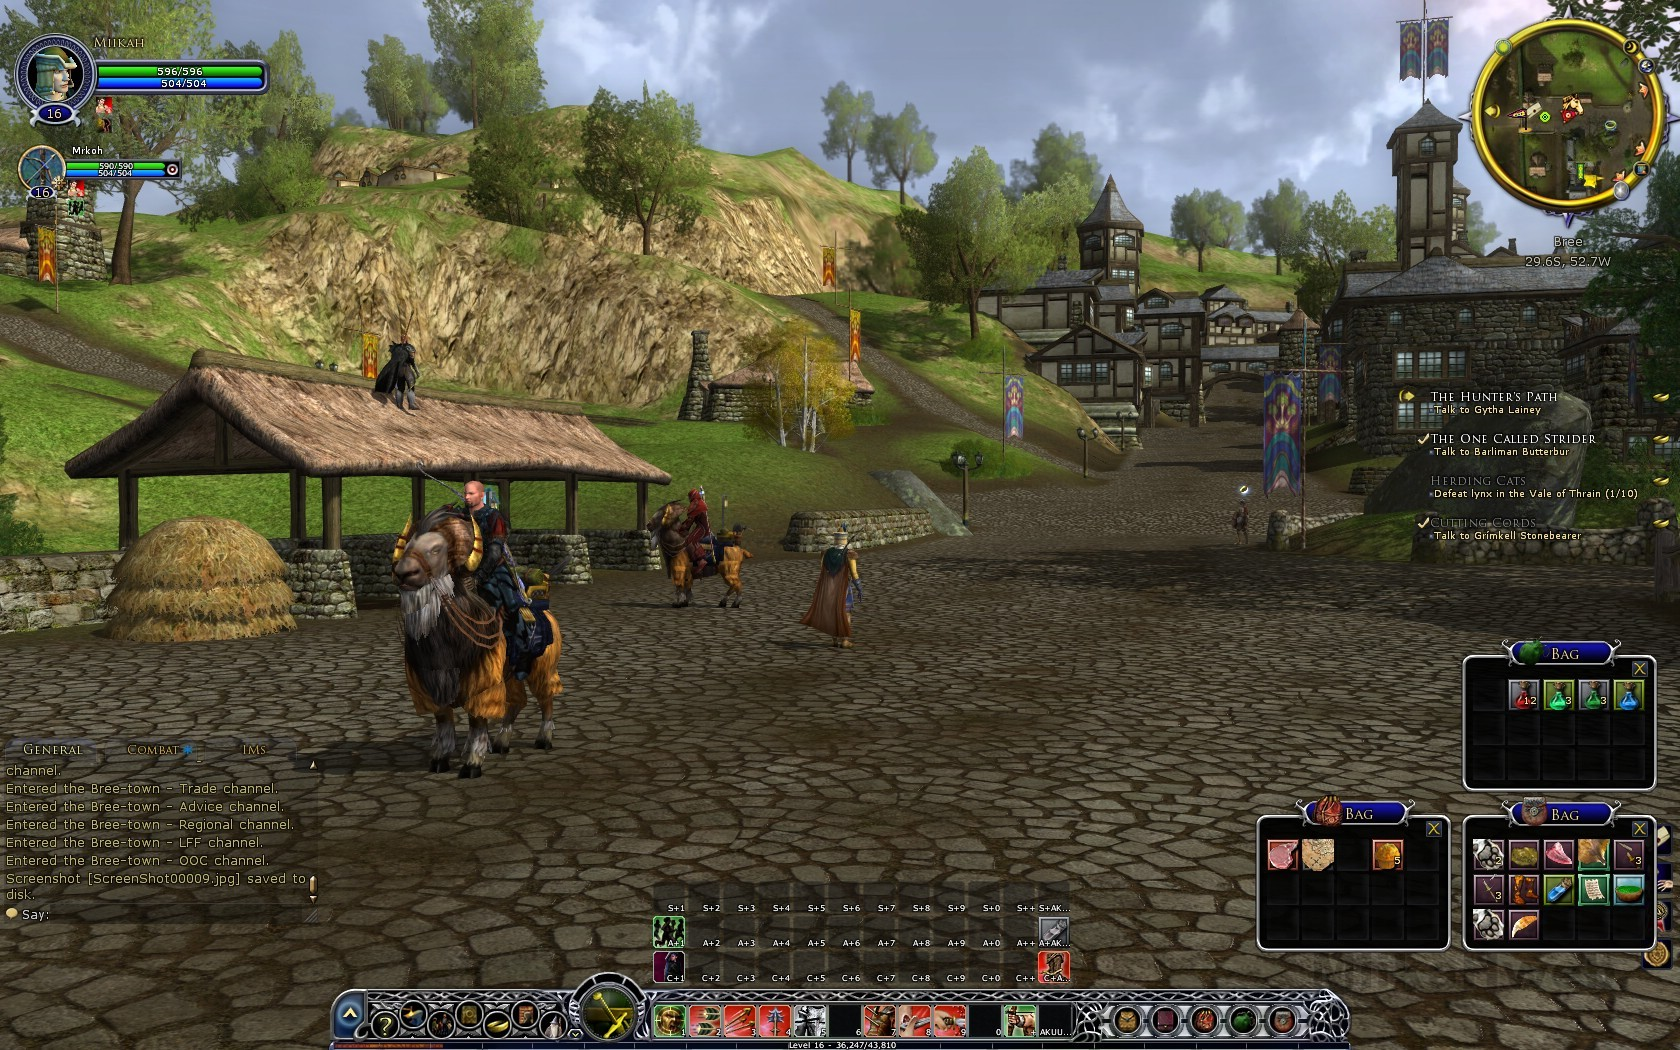 Lord of the rings online nude mod adult scene